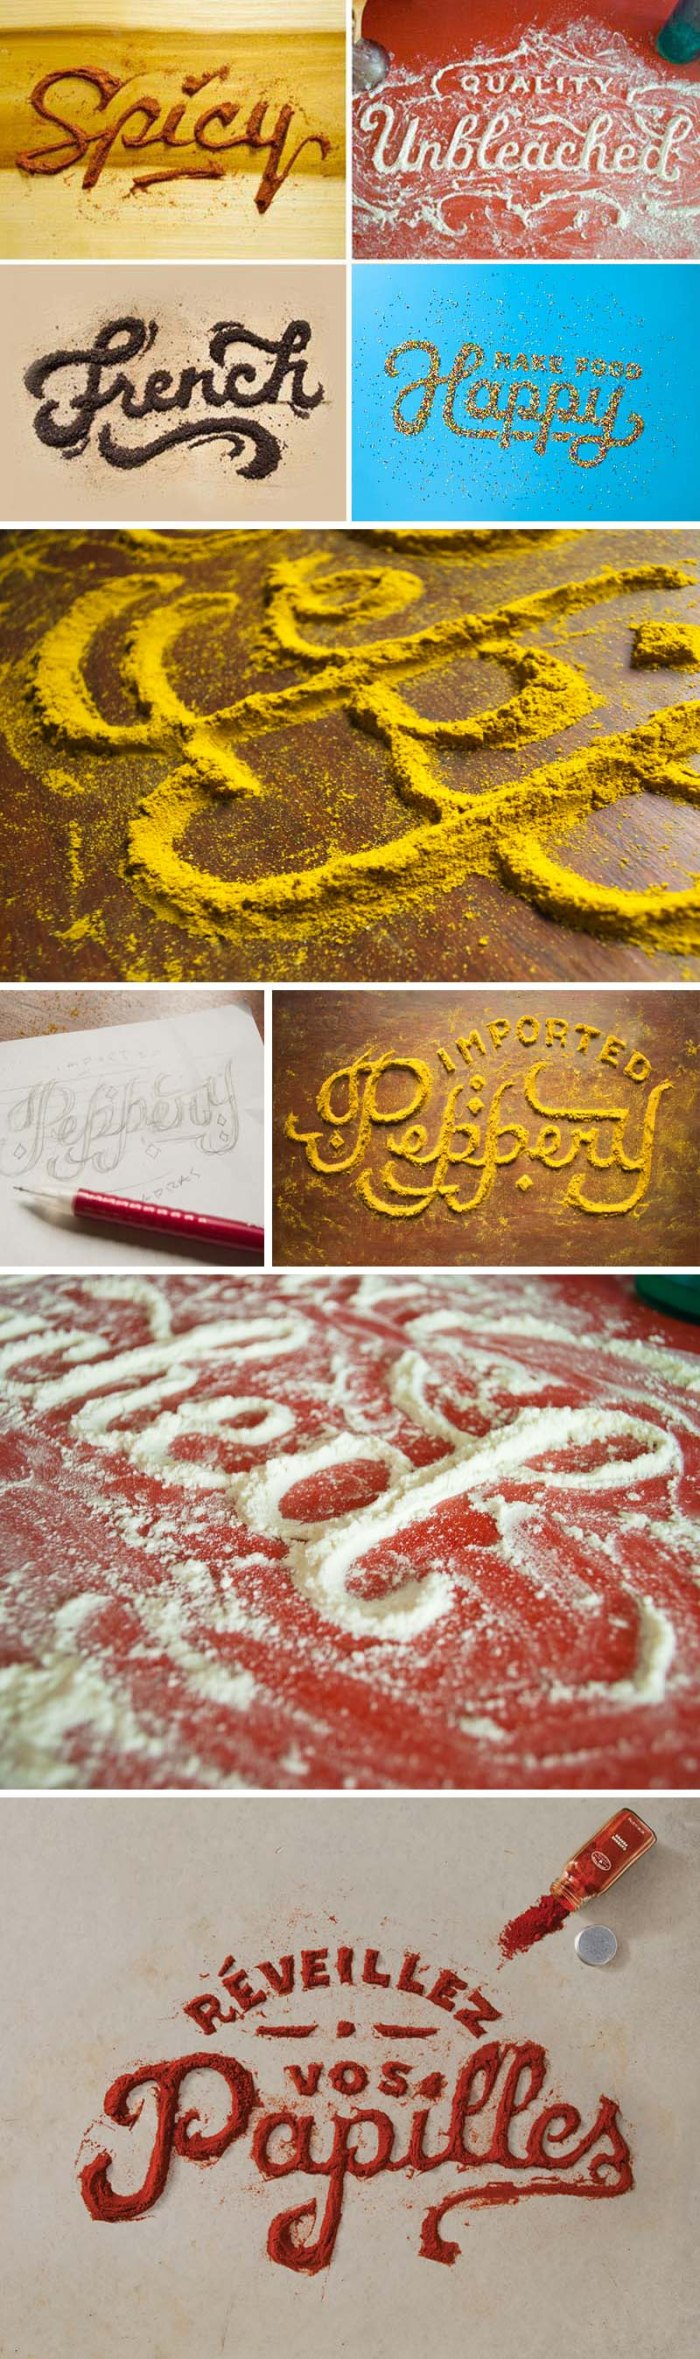 Food Typography, Type made with food, Danielle Evans project for Target's Food for thought campaign